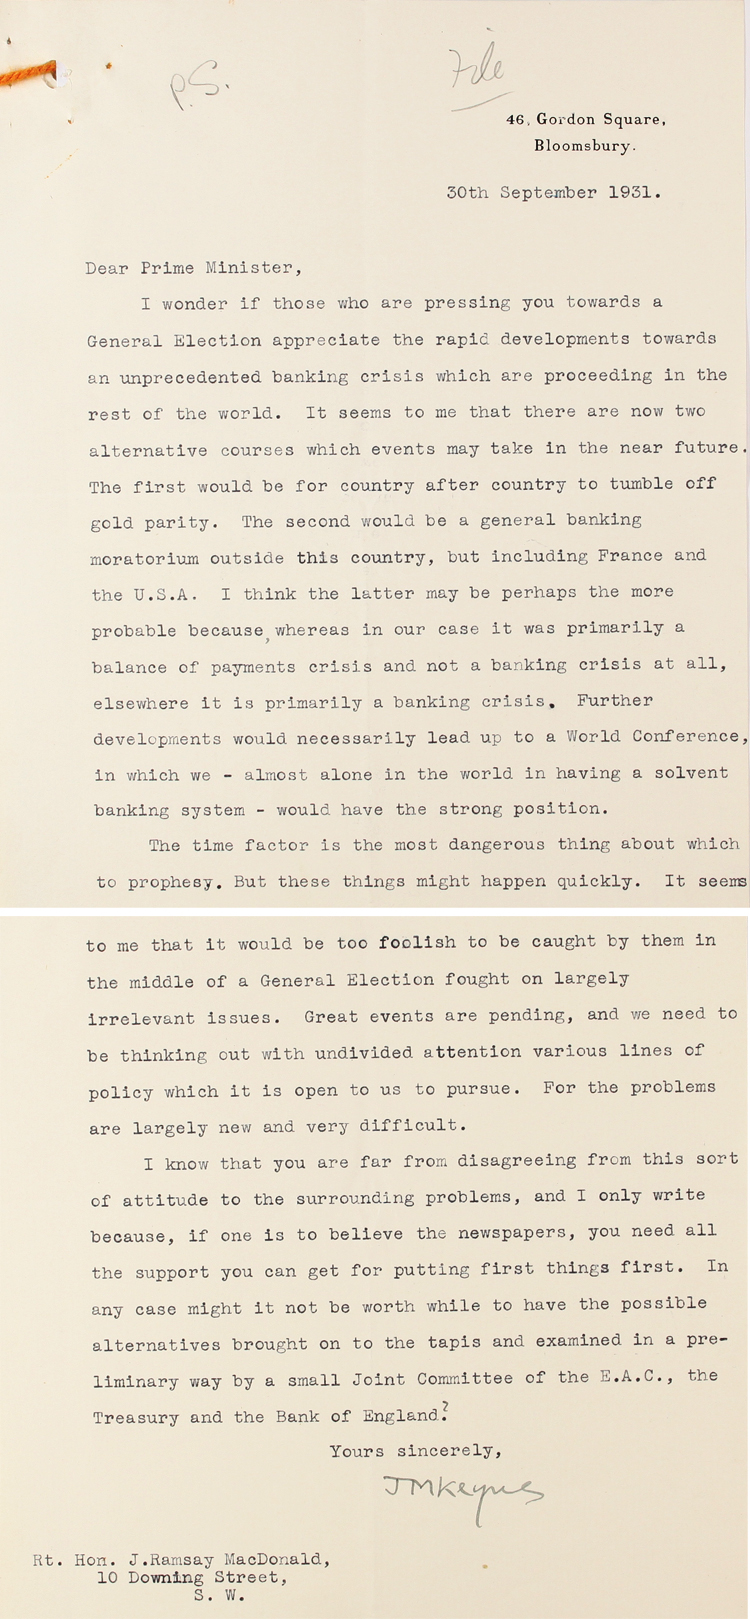 Letter from John Maynard Keynes on the economic situation to Prime Minister Ramsay MacDonald, 30th September, 1931 (PRO 30/69/1320)